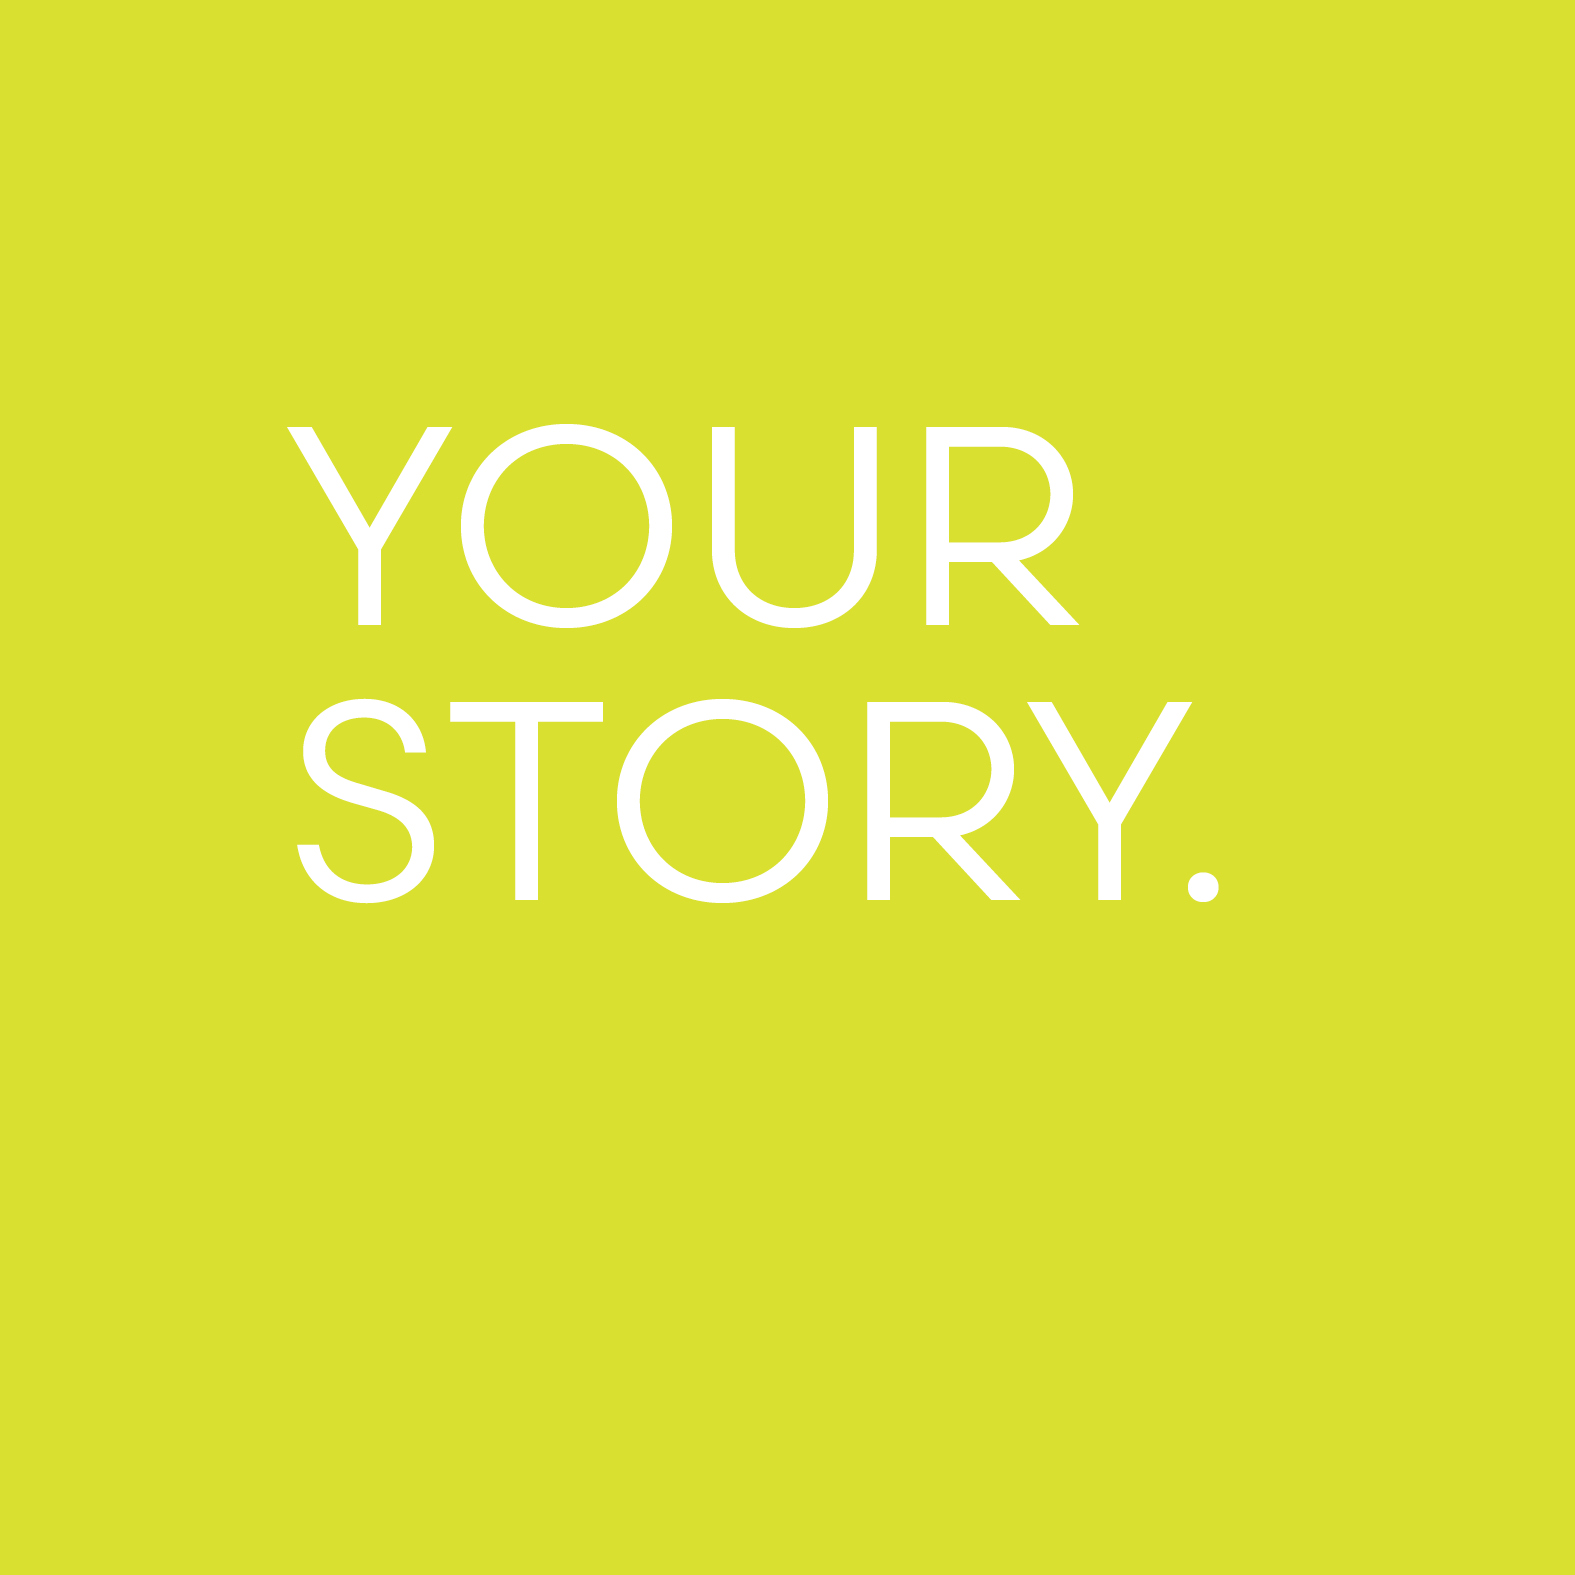 Campaign sq picts yourstory higher